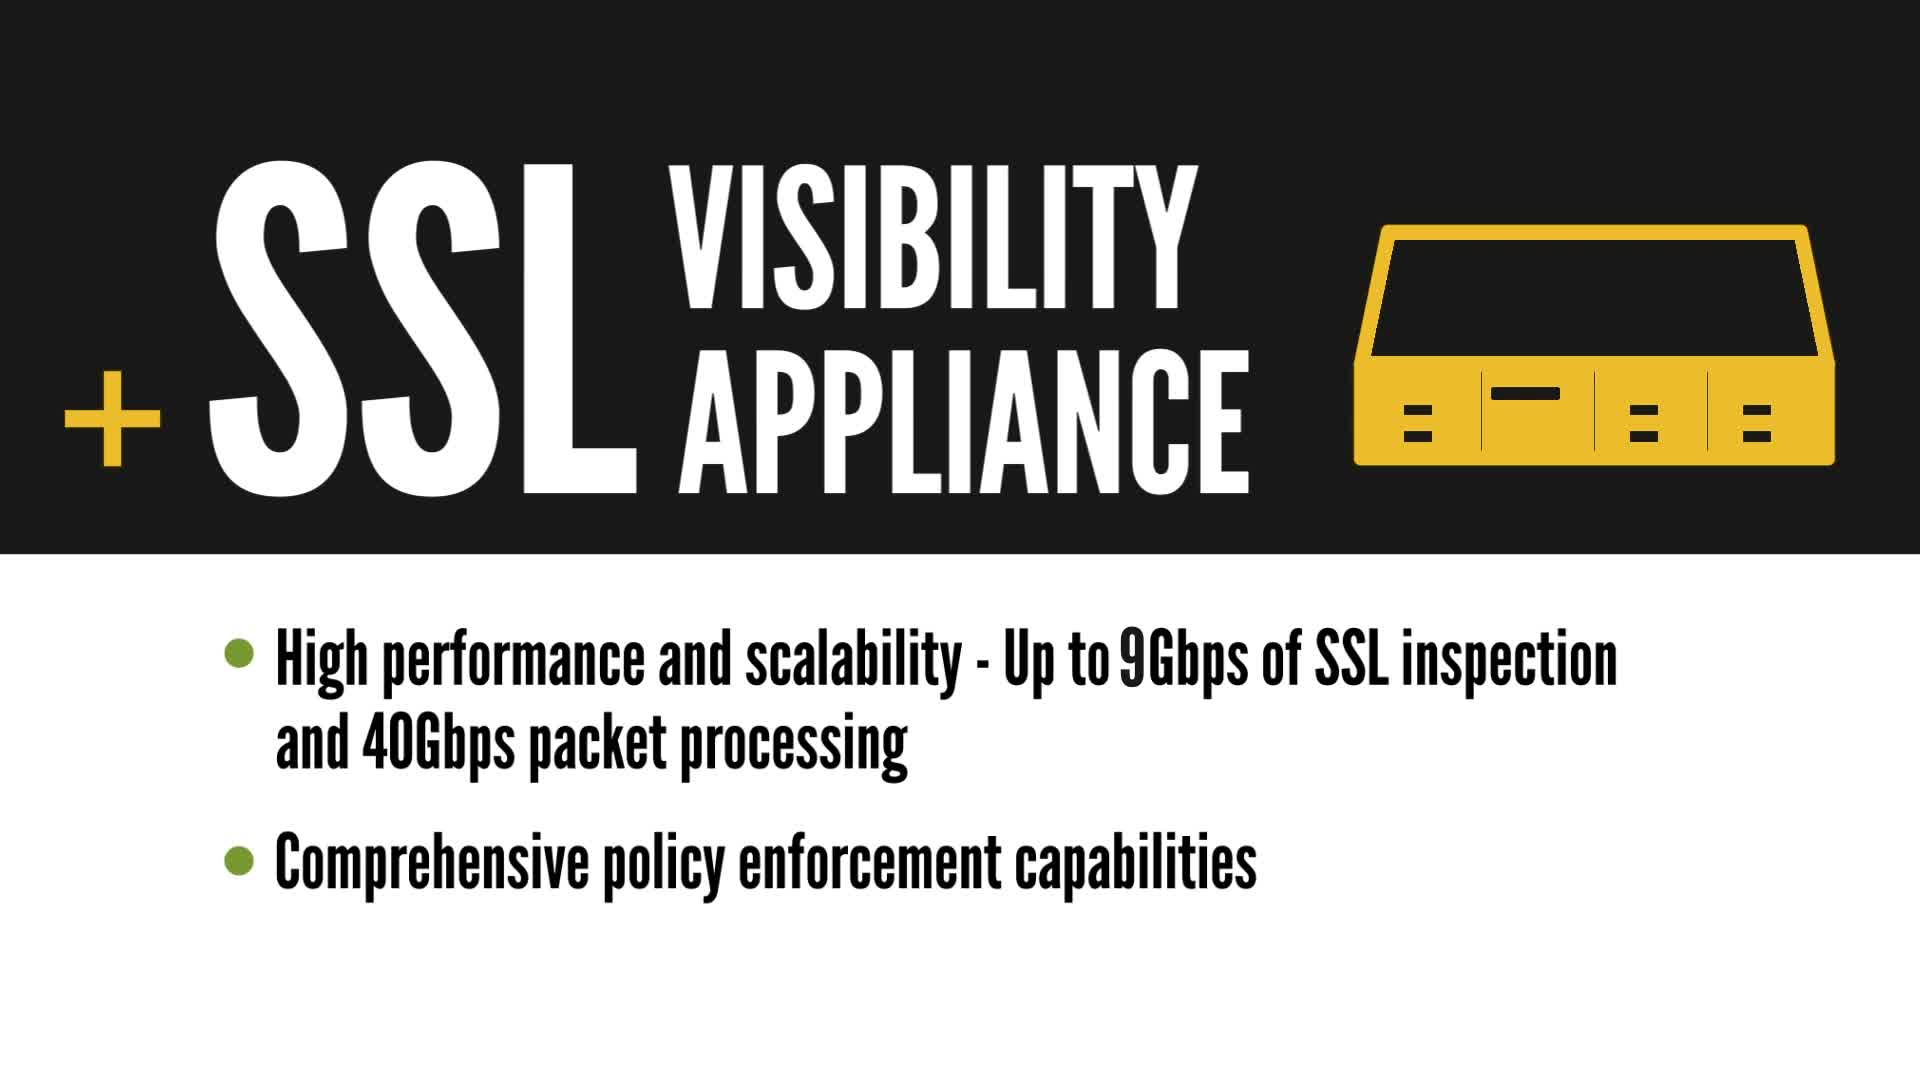 SSL Visibility Appliance | SSL Decryption | Symantec